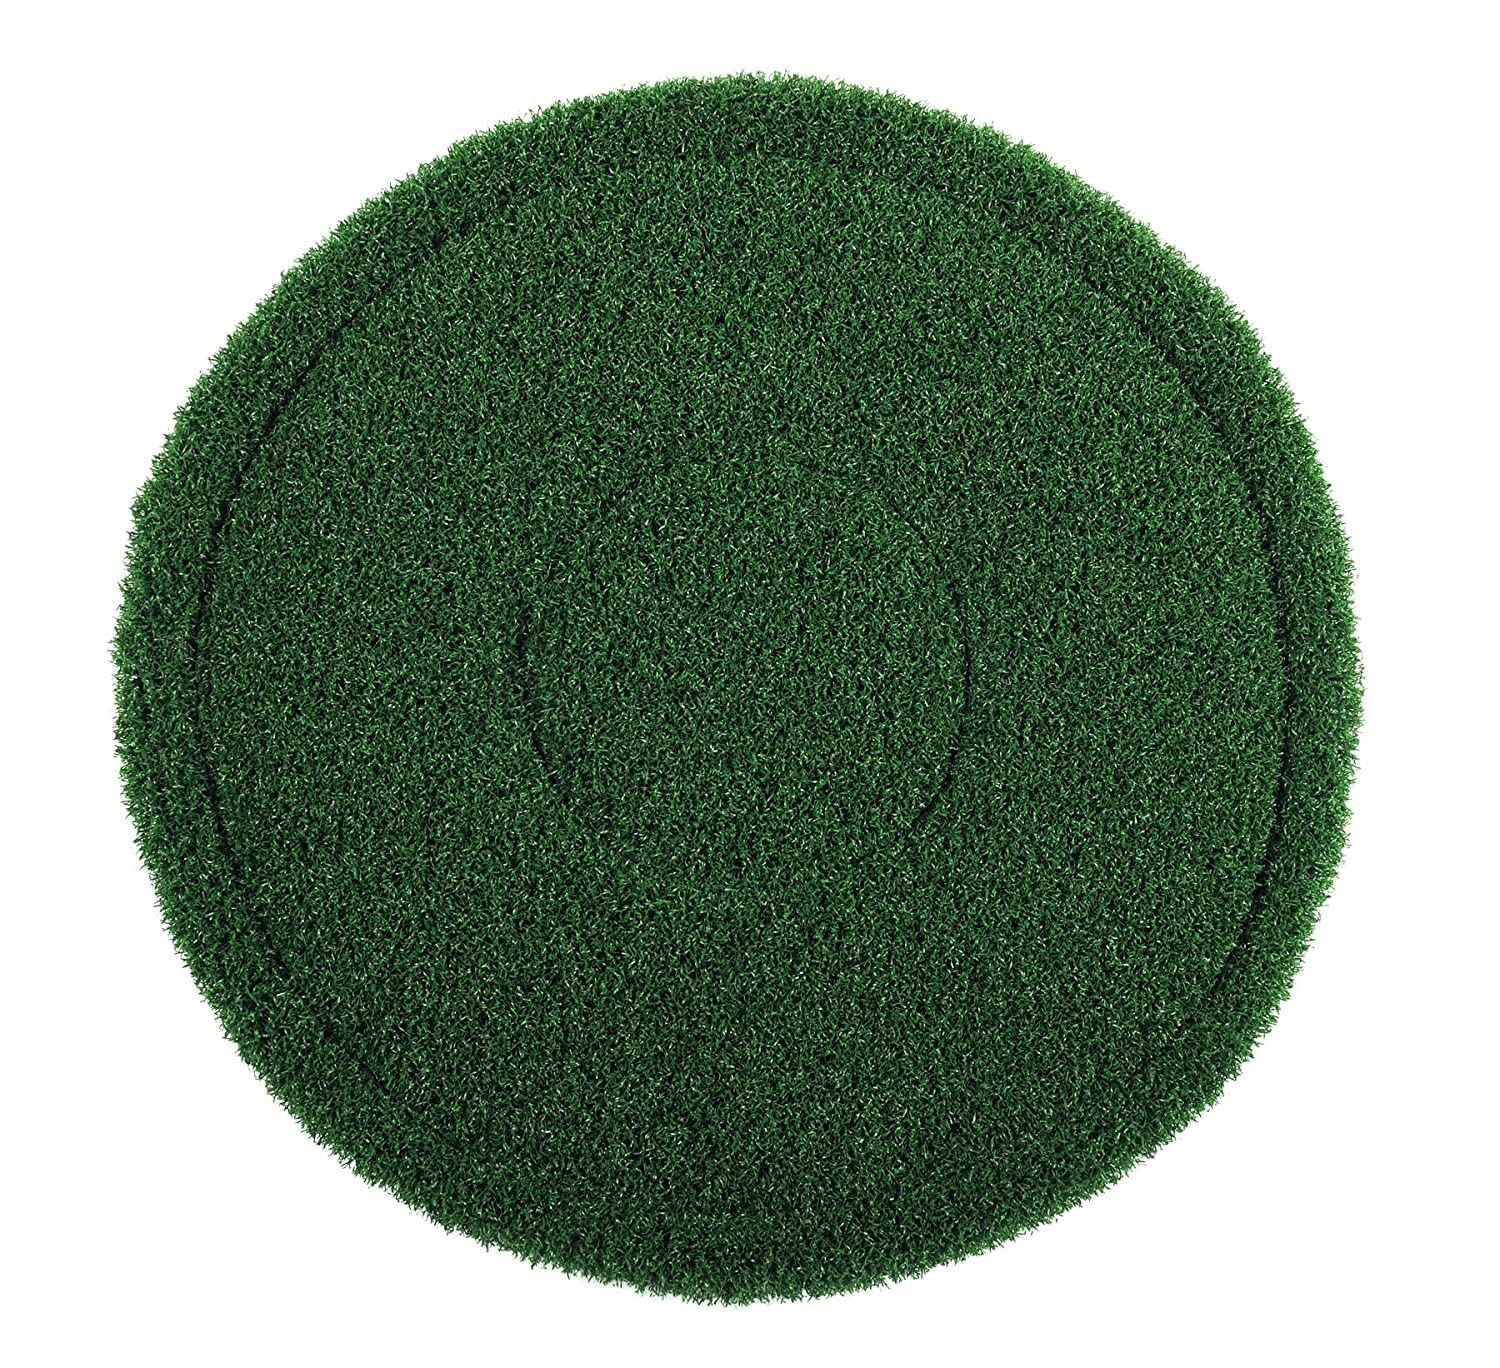 Americo Manufacturing 402908 Turfscrub Single-Sided Coarse Bristle Brush Type Floor Pads (4 Pack), 8'